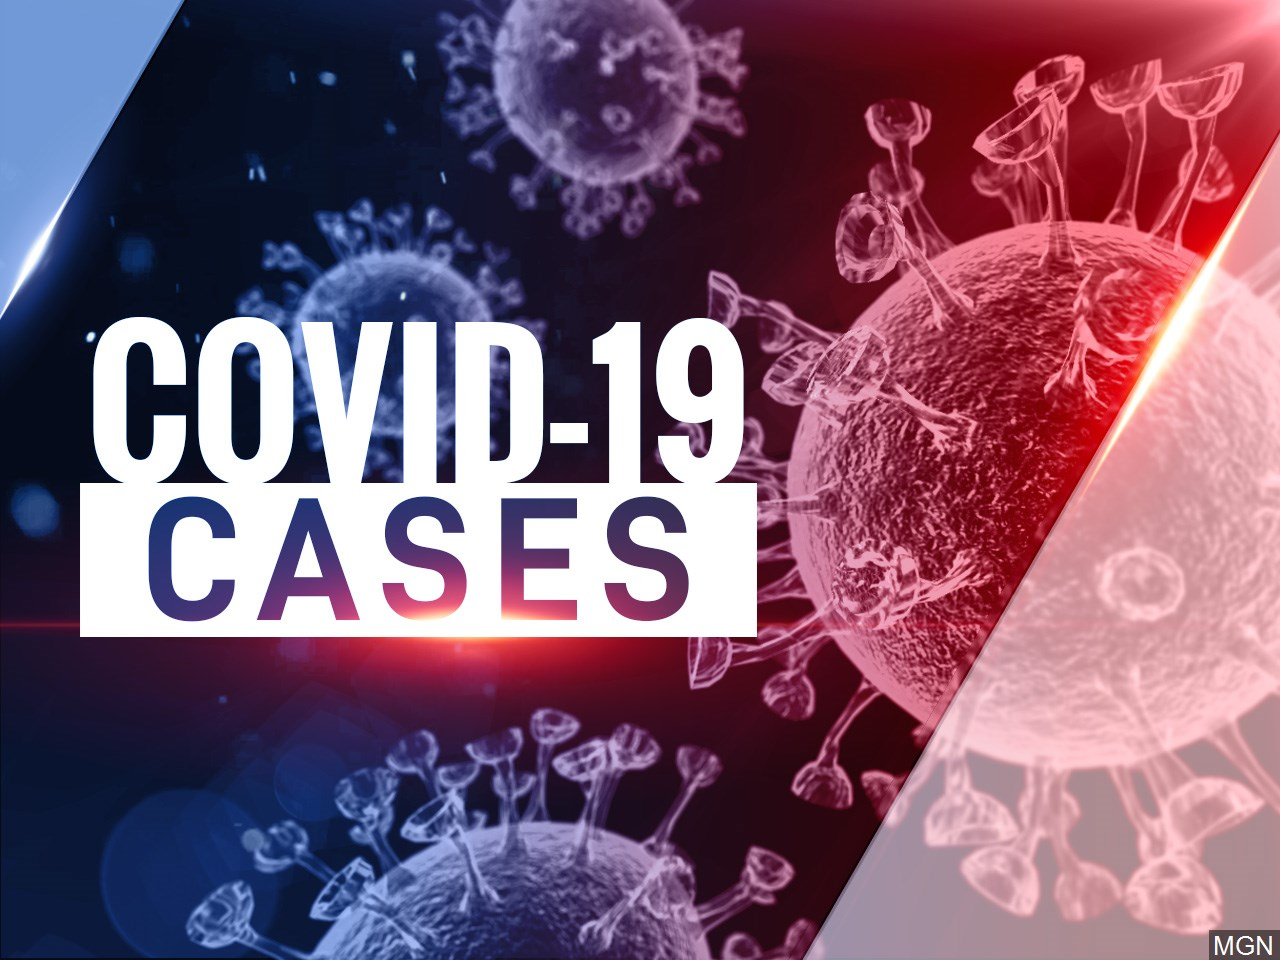 432 New COVID19 Cases, 10 New Deaths Over the Weekend in Riverside County